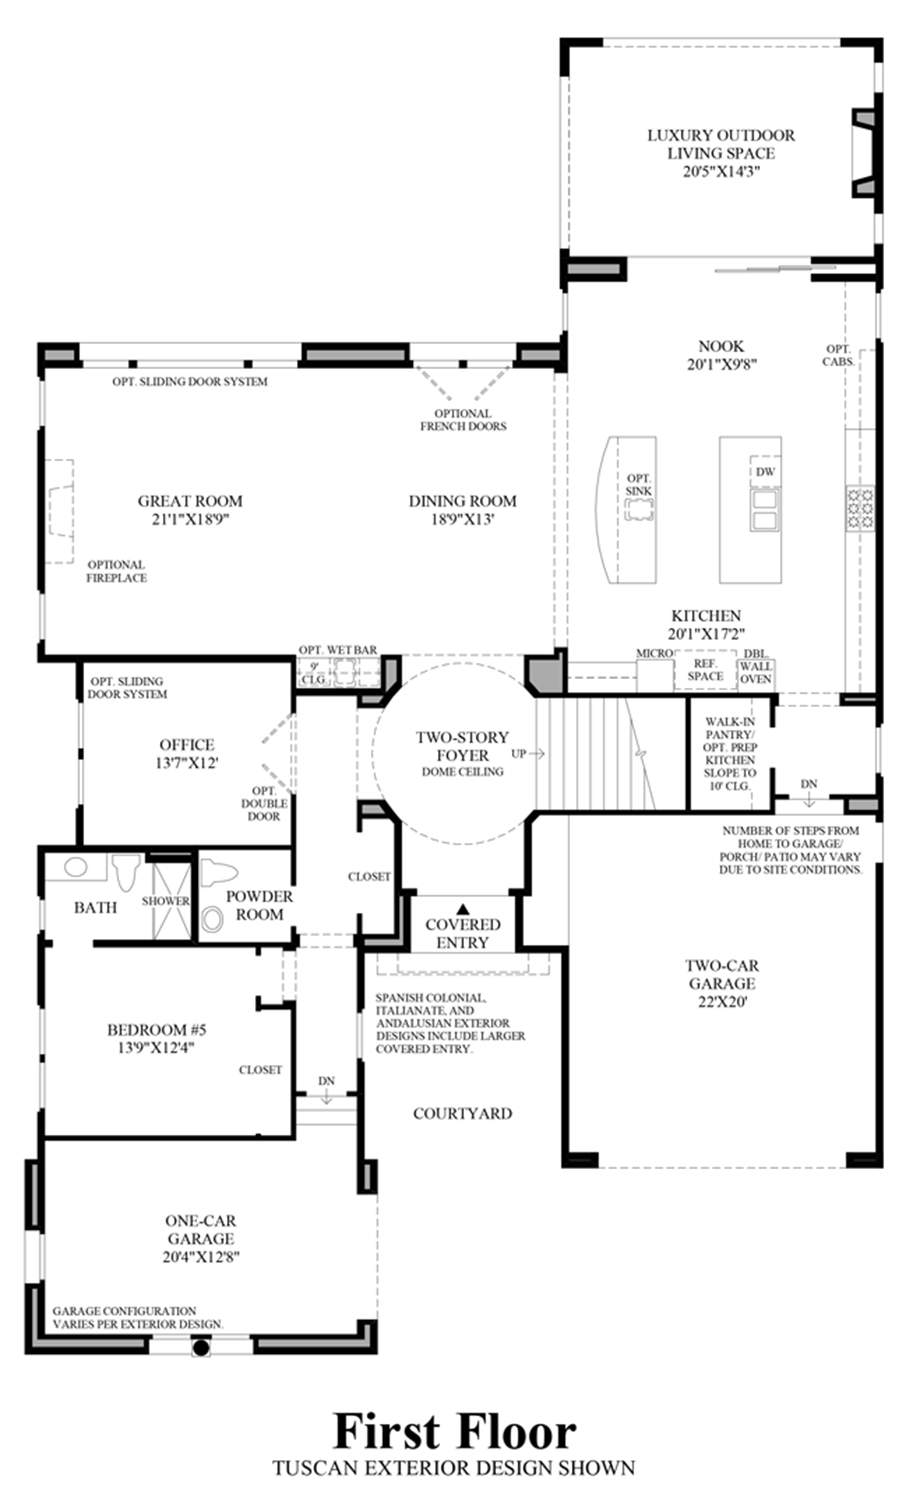 213602 together with 4c50v5 also 8 additionally House Plans Lafayette La also 018 House Mirag Arquitectura Gesti. on midcentury house design